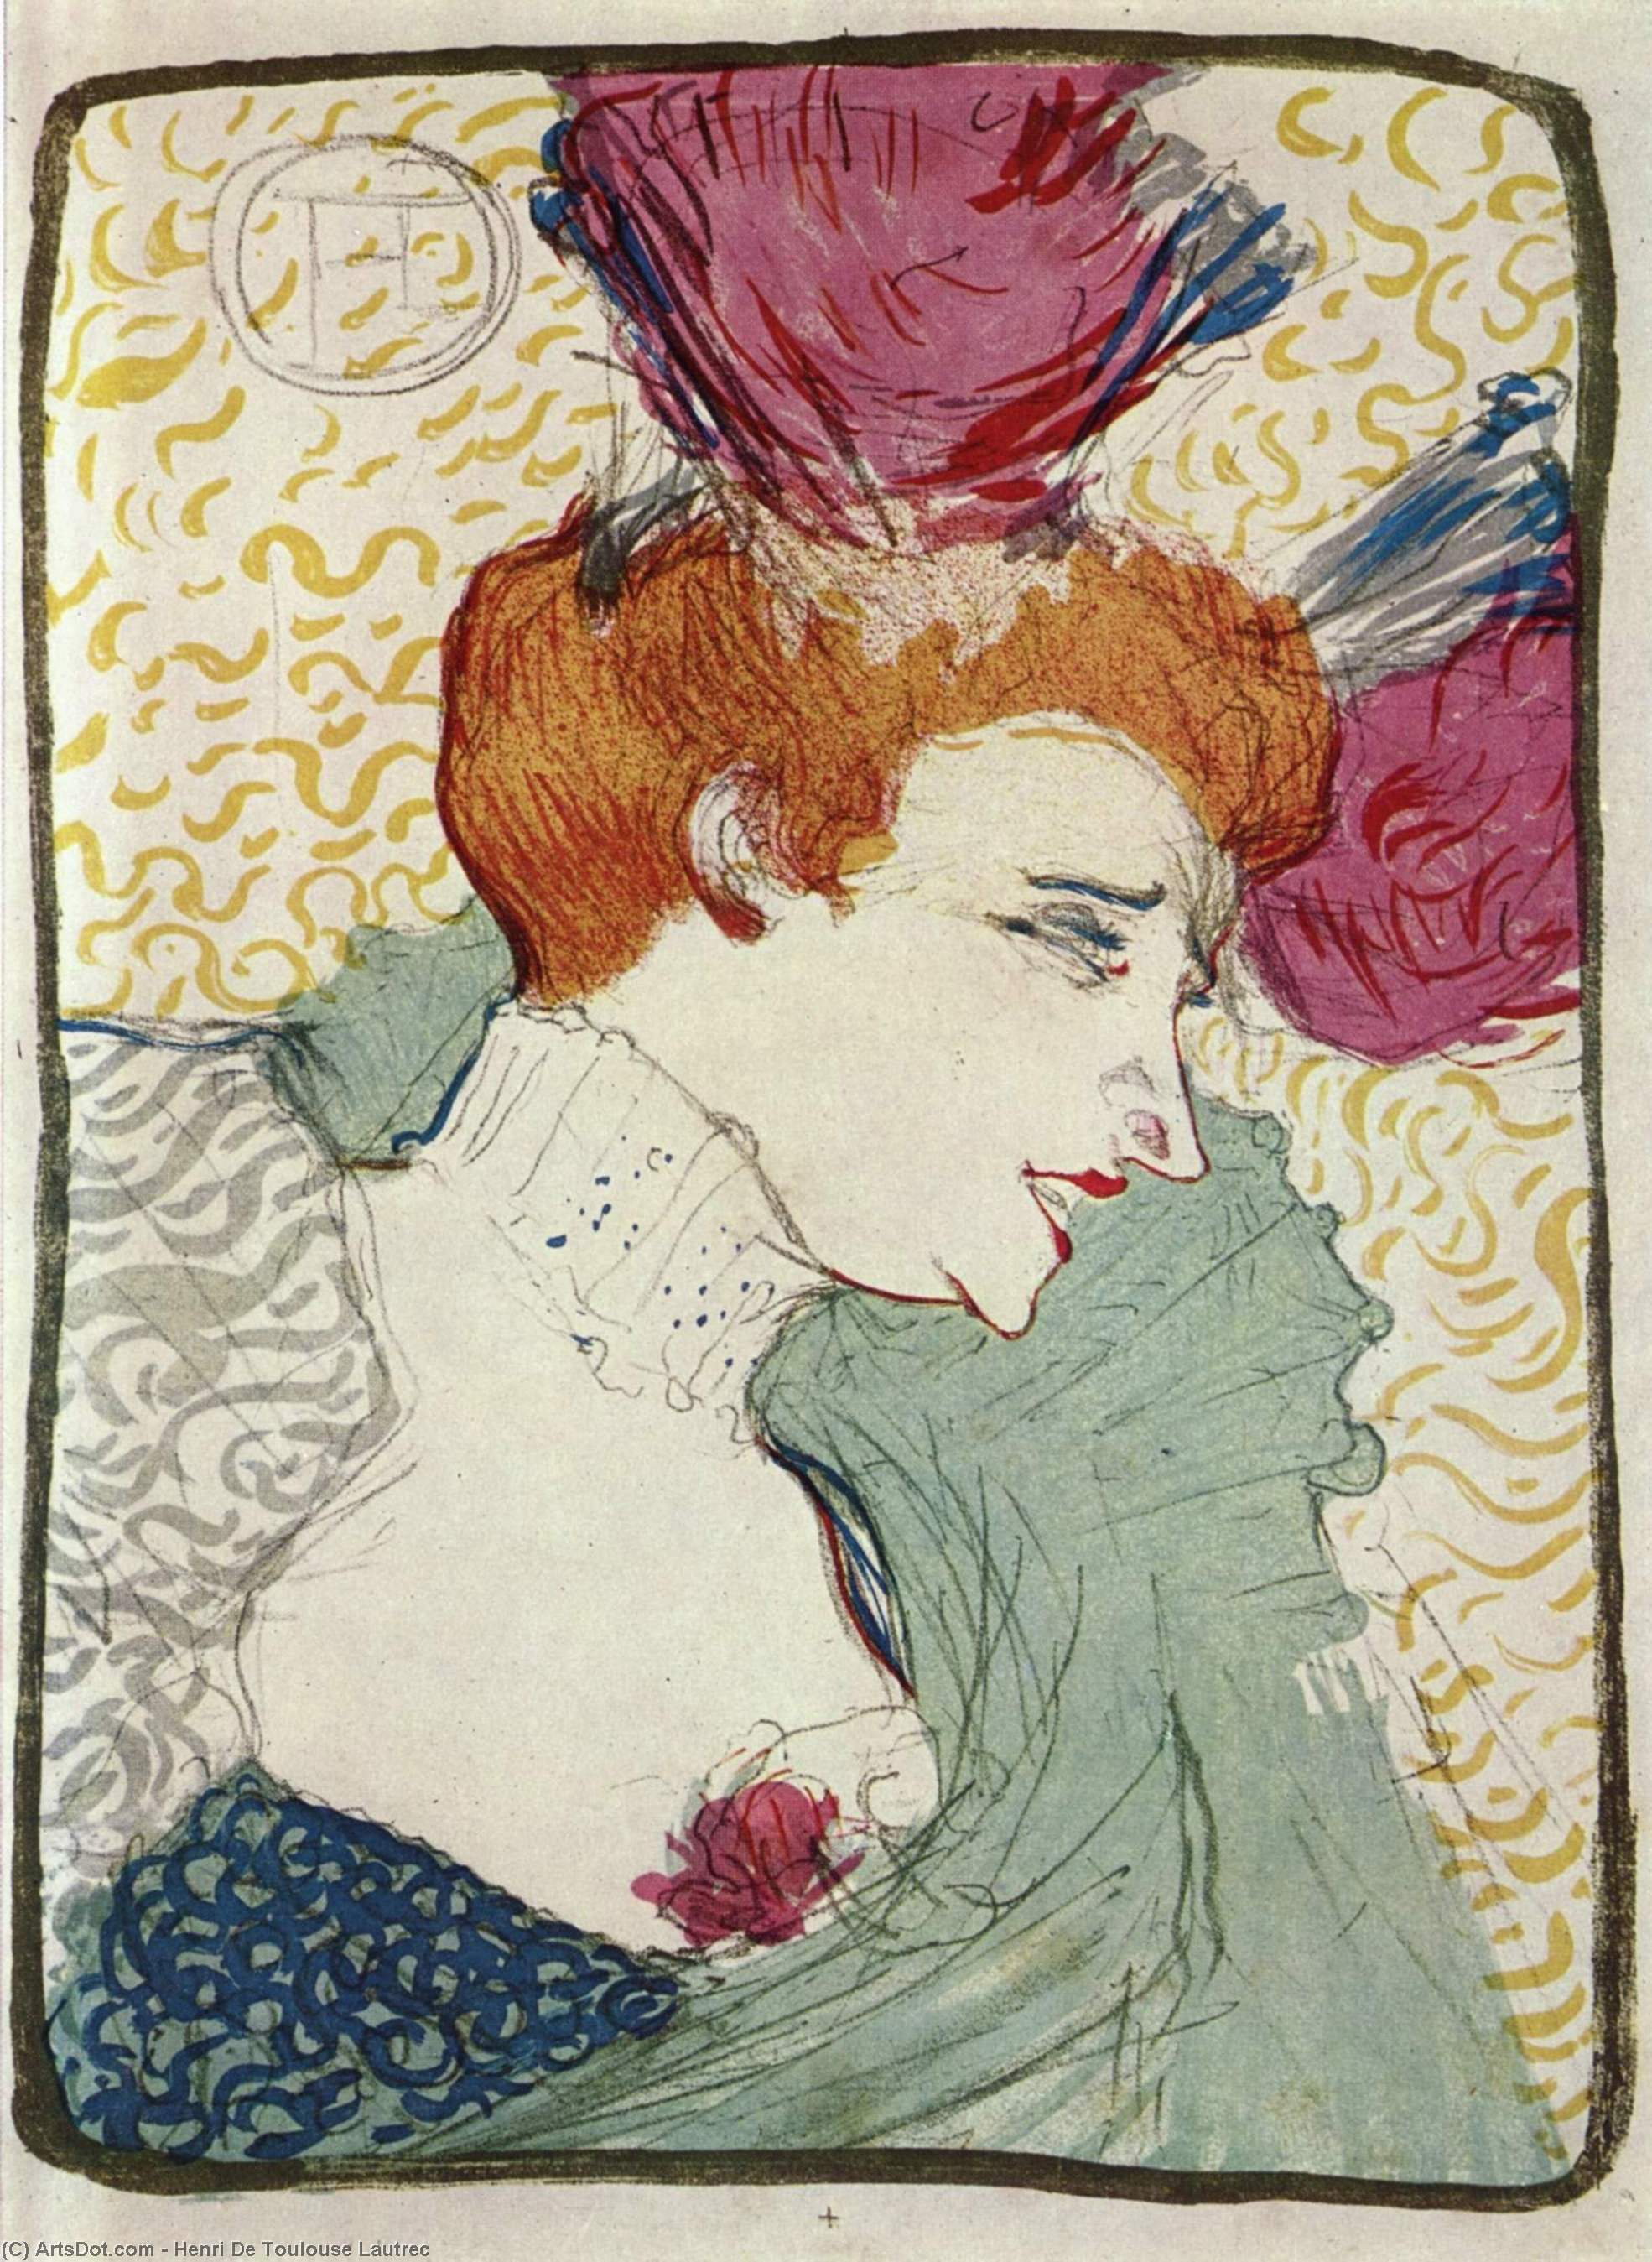 Marcelle Lender, 1895 by Henri De Toulouse Lautrec (1864-1901, France)